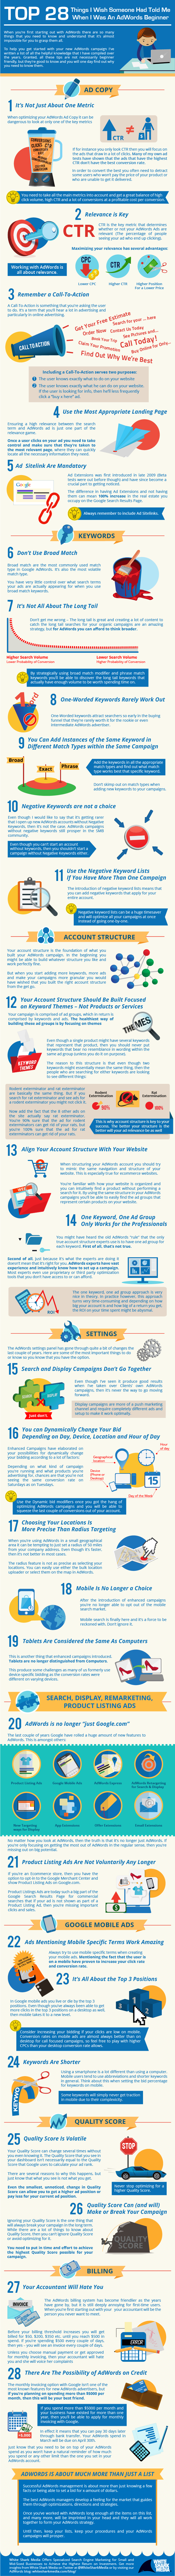 top-28-things-i-wish-someone-had-told-me-when-i-was-an-adwords-beginner-infographic-white-shark-m